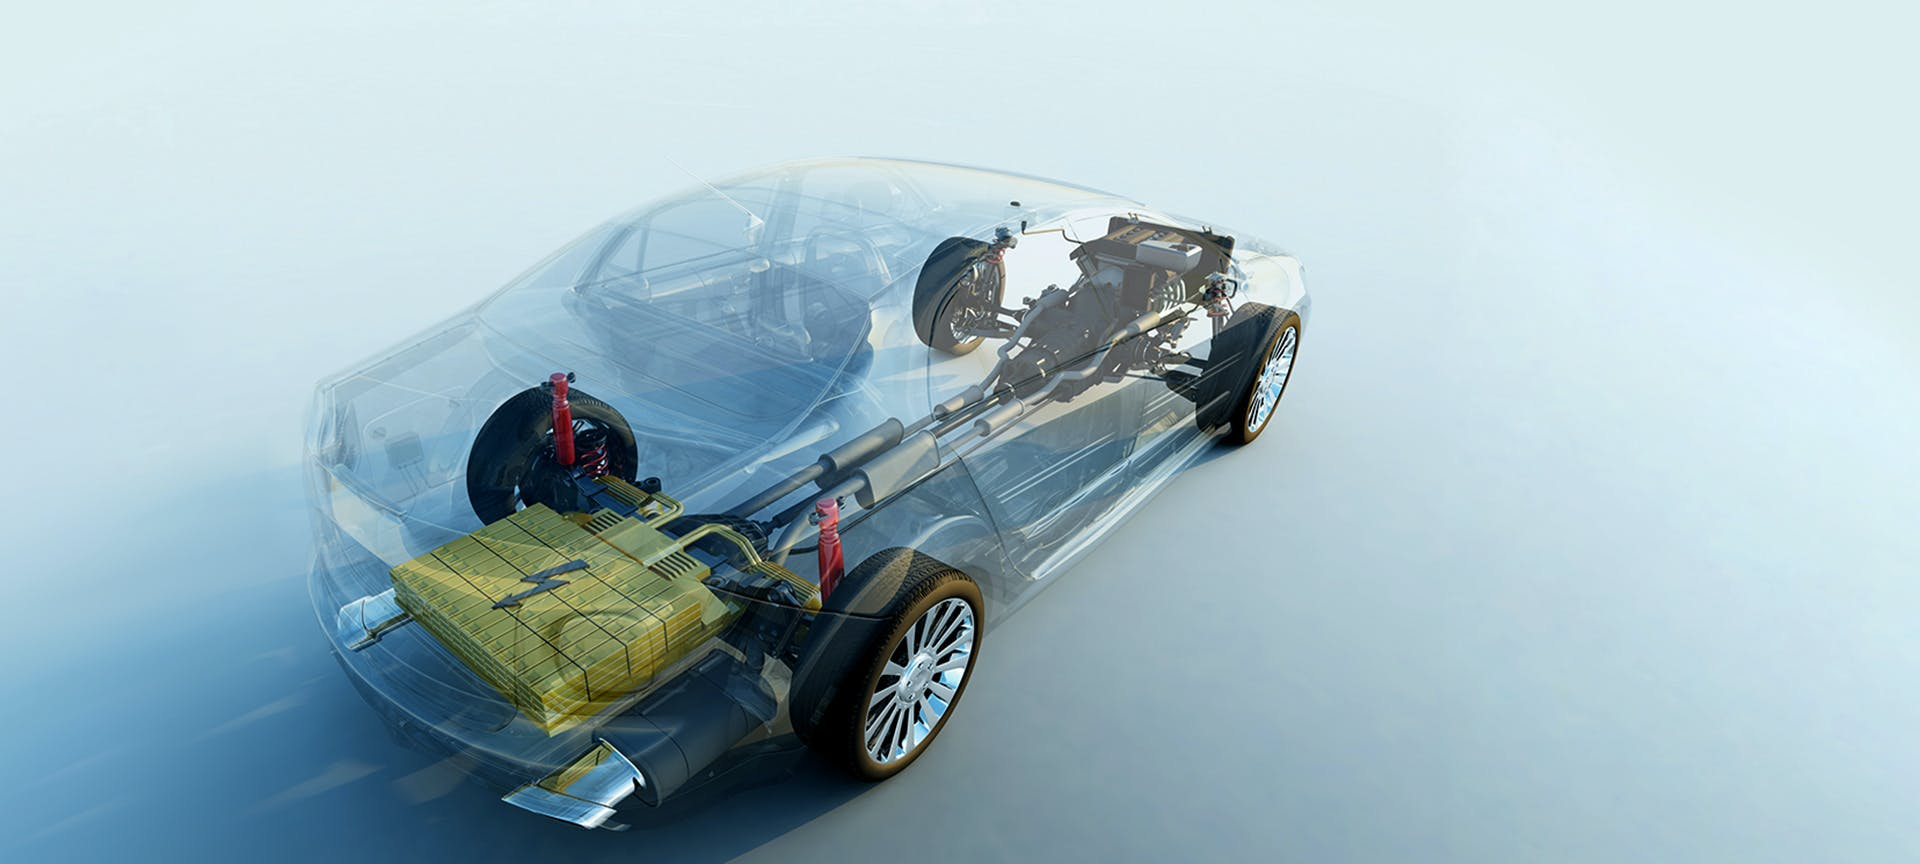 A car with electric drive and transparent bodywork drives diagonally through the picture